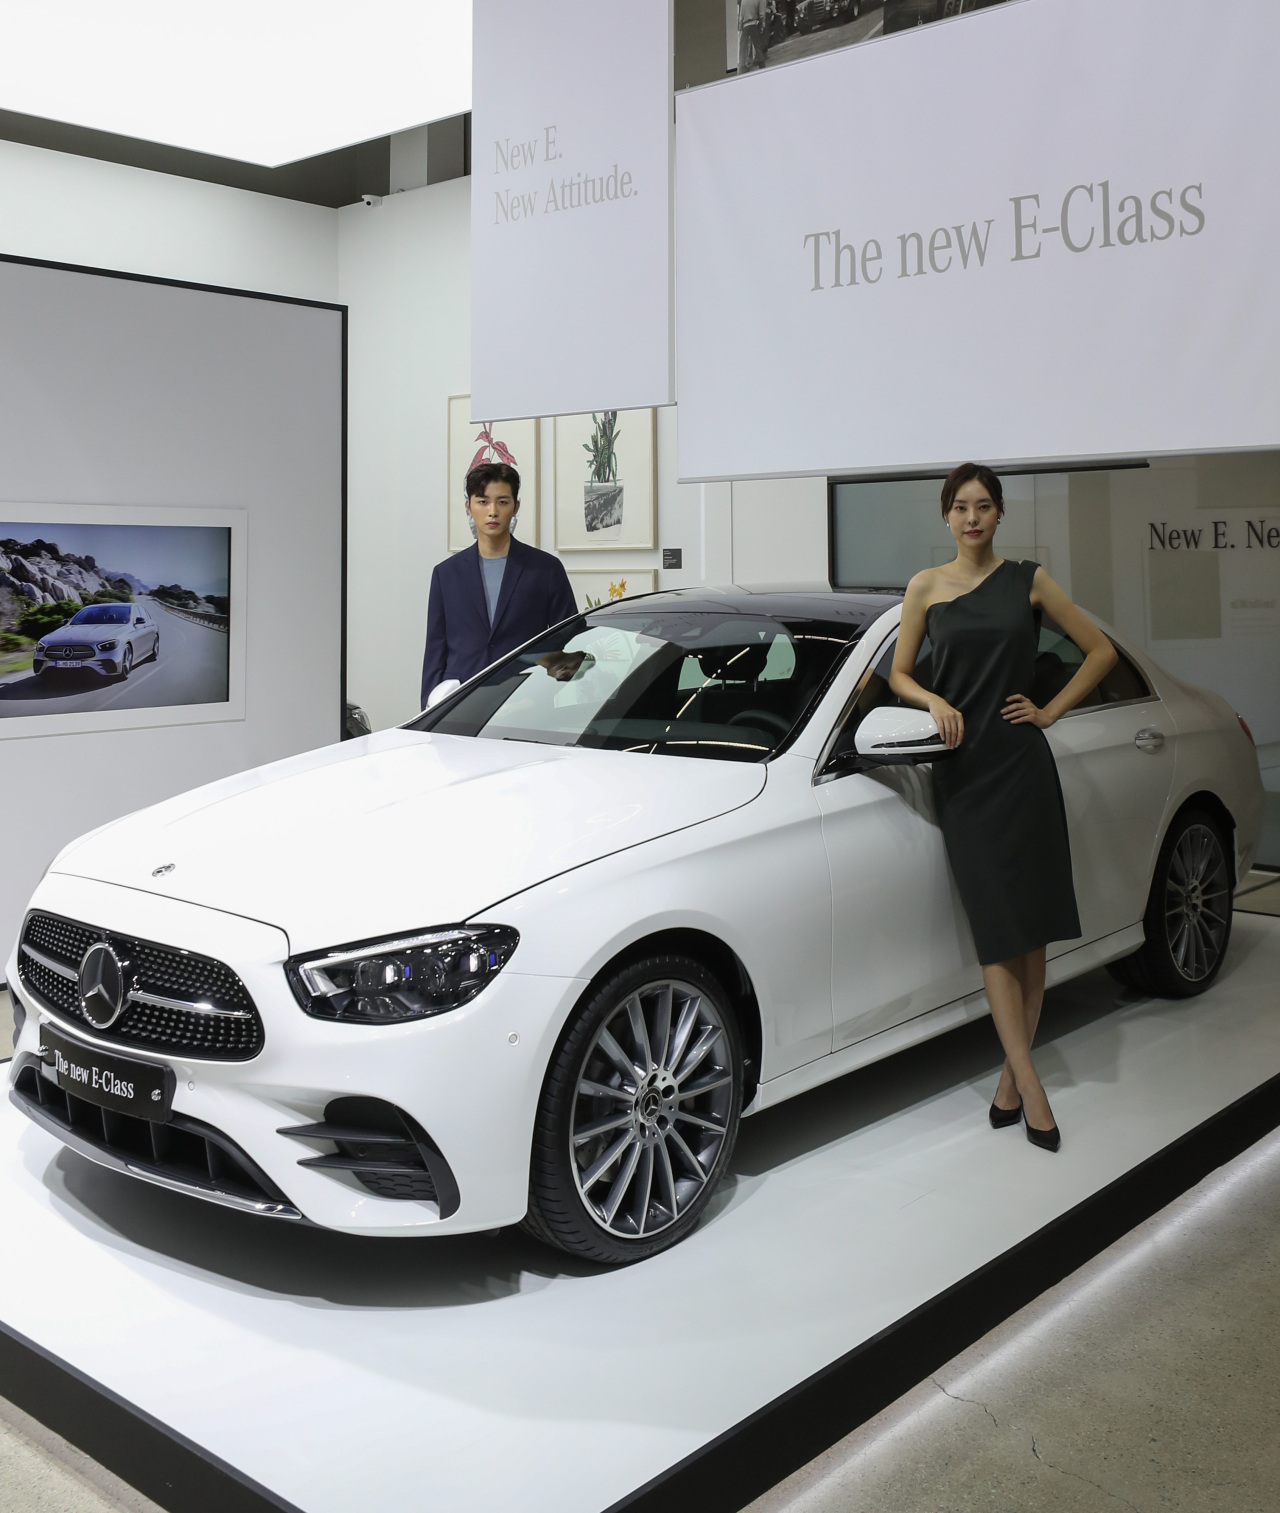 Models pose with the New Mercedes-Benz E-Class during an event in Sinsa-dong, Seoul, Tuesday. (Yonhap)